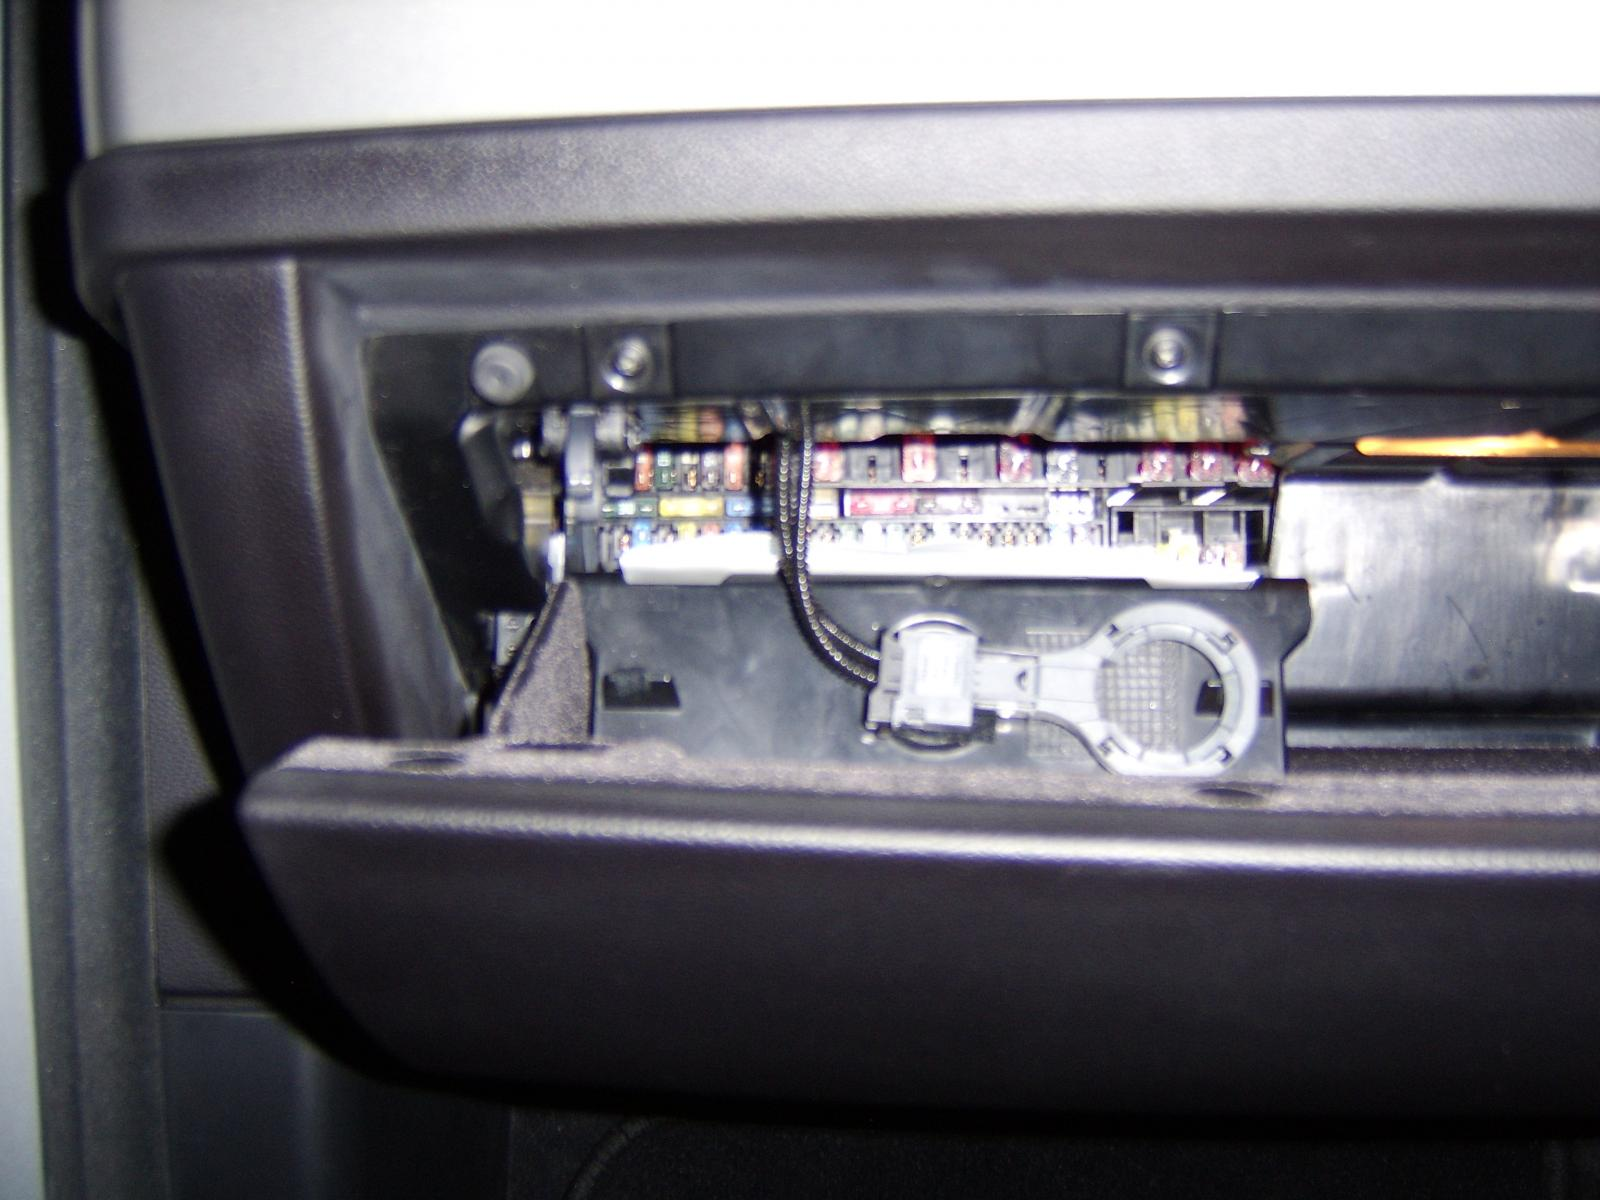 [SCHEMATICS_48IS]  3F00D28 2010 Bmw 750li Fuse Box | Wiring Library | 2010 Bmw 750li Fuse Box |  | Wiring Library